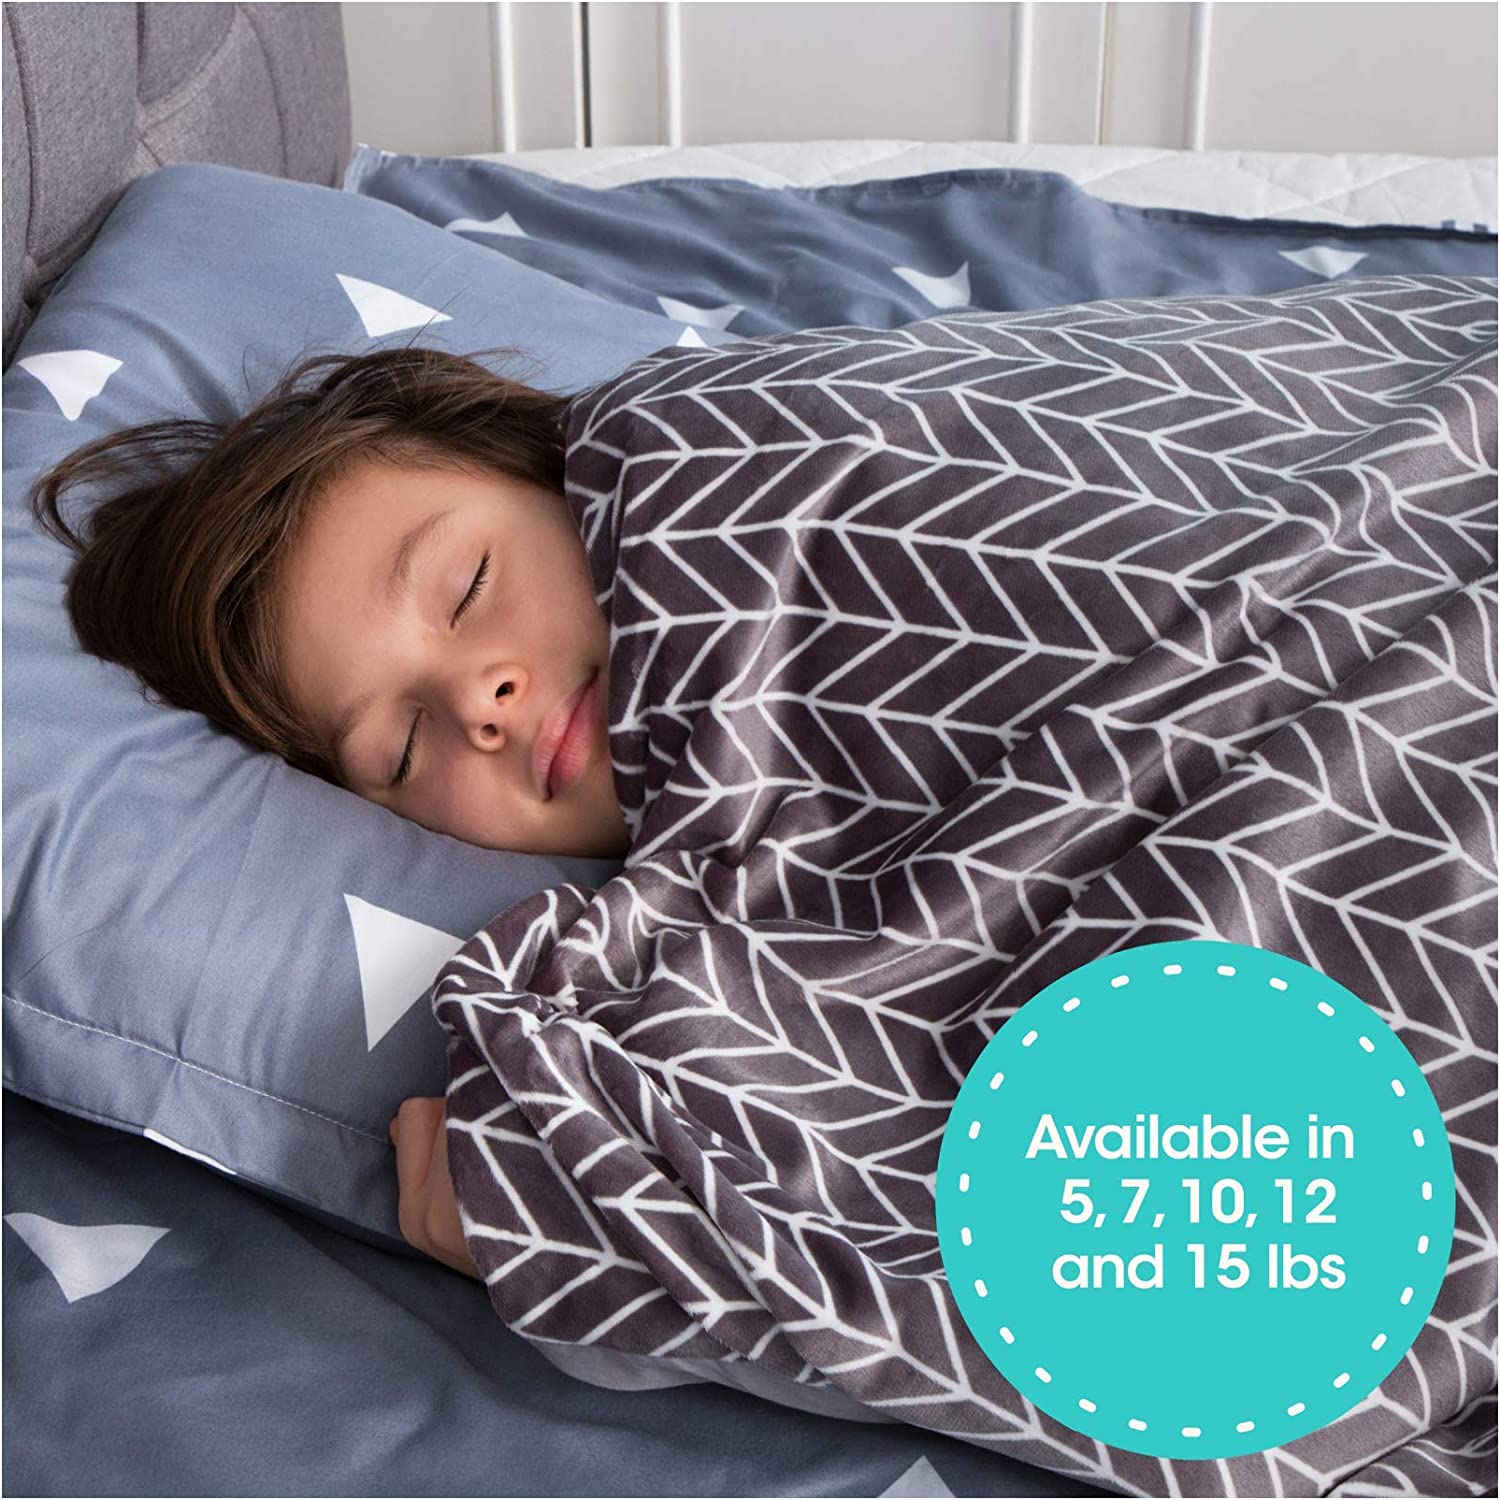 """Florensi Weighted Blanket for Kids with Removable Bamboo Duvet Cover (5 Lbs & 36"""" x 48""""), 5 Pounds Weighted Comforter, Twin Size, Cooling Blanket for Kid Baby Toddler Teenager, Machine Washable Cover"""